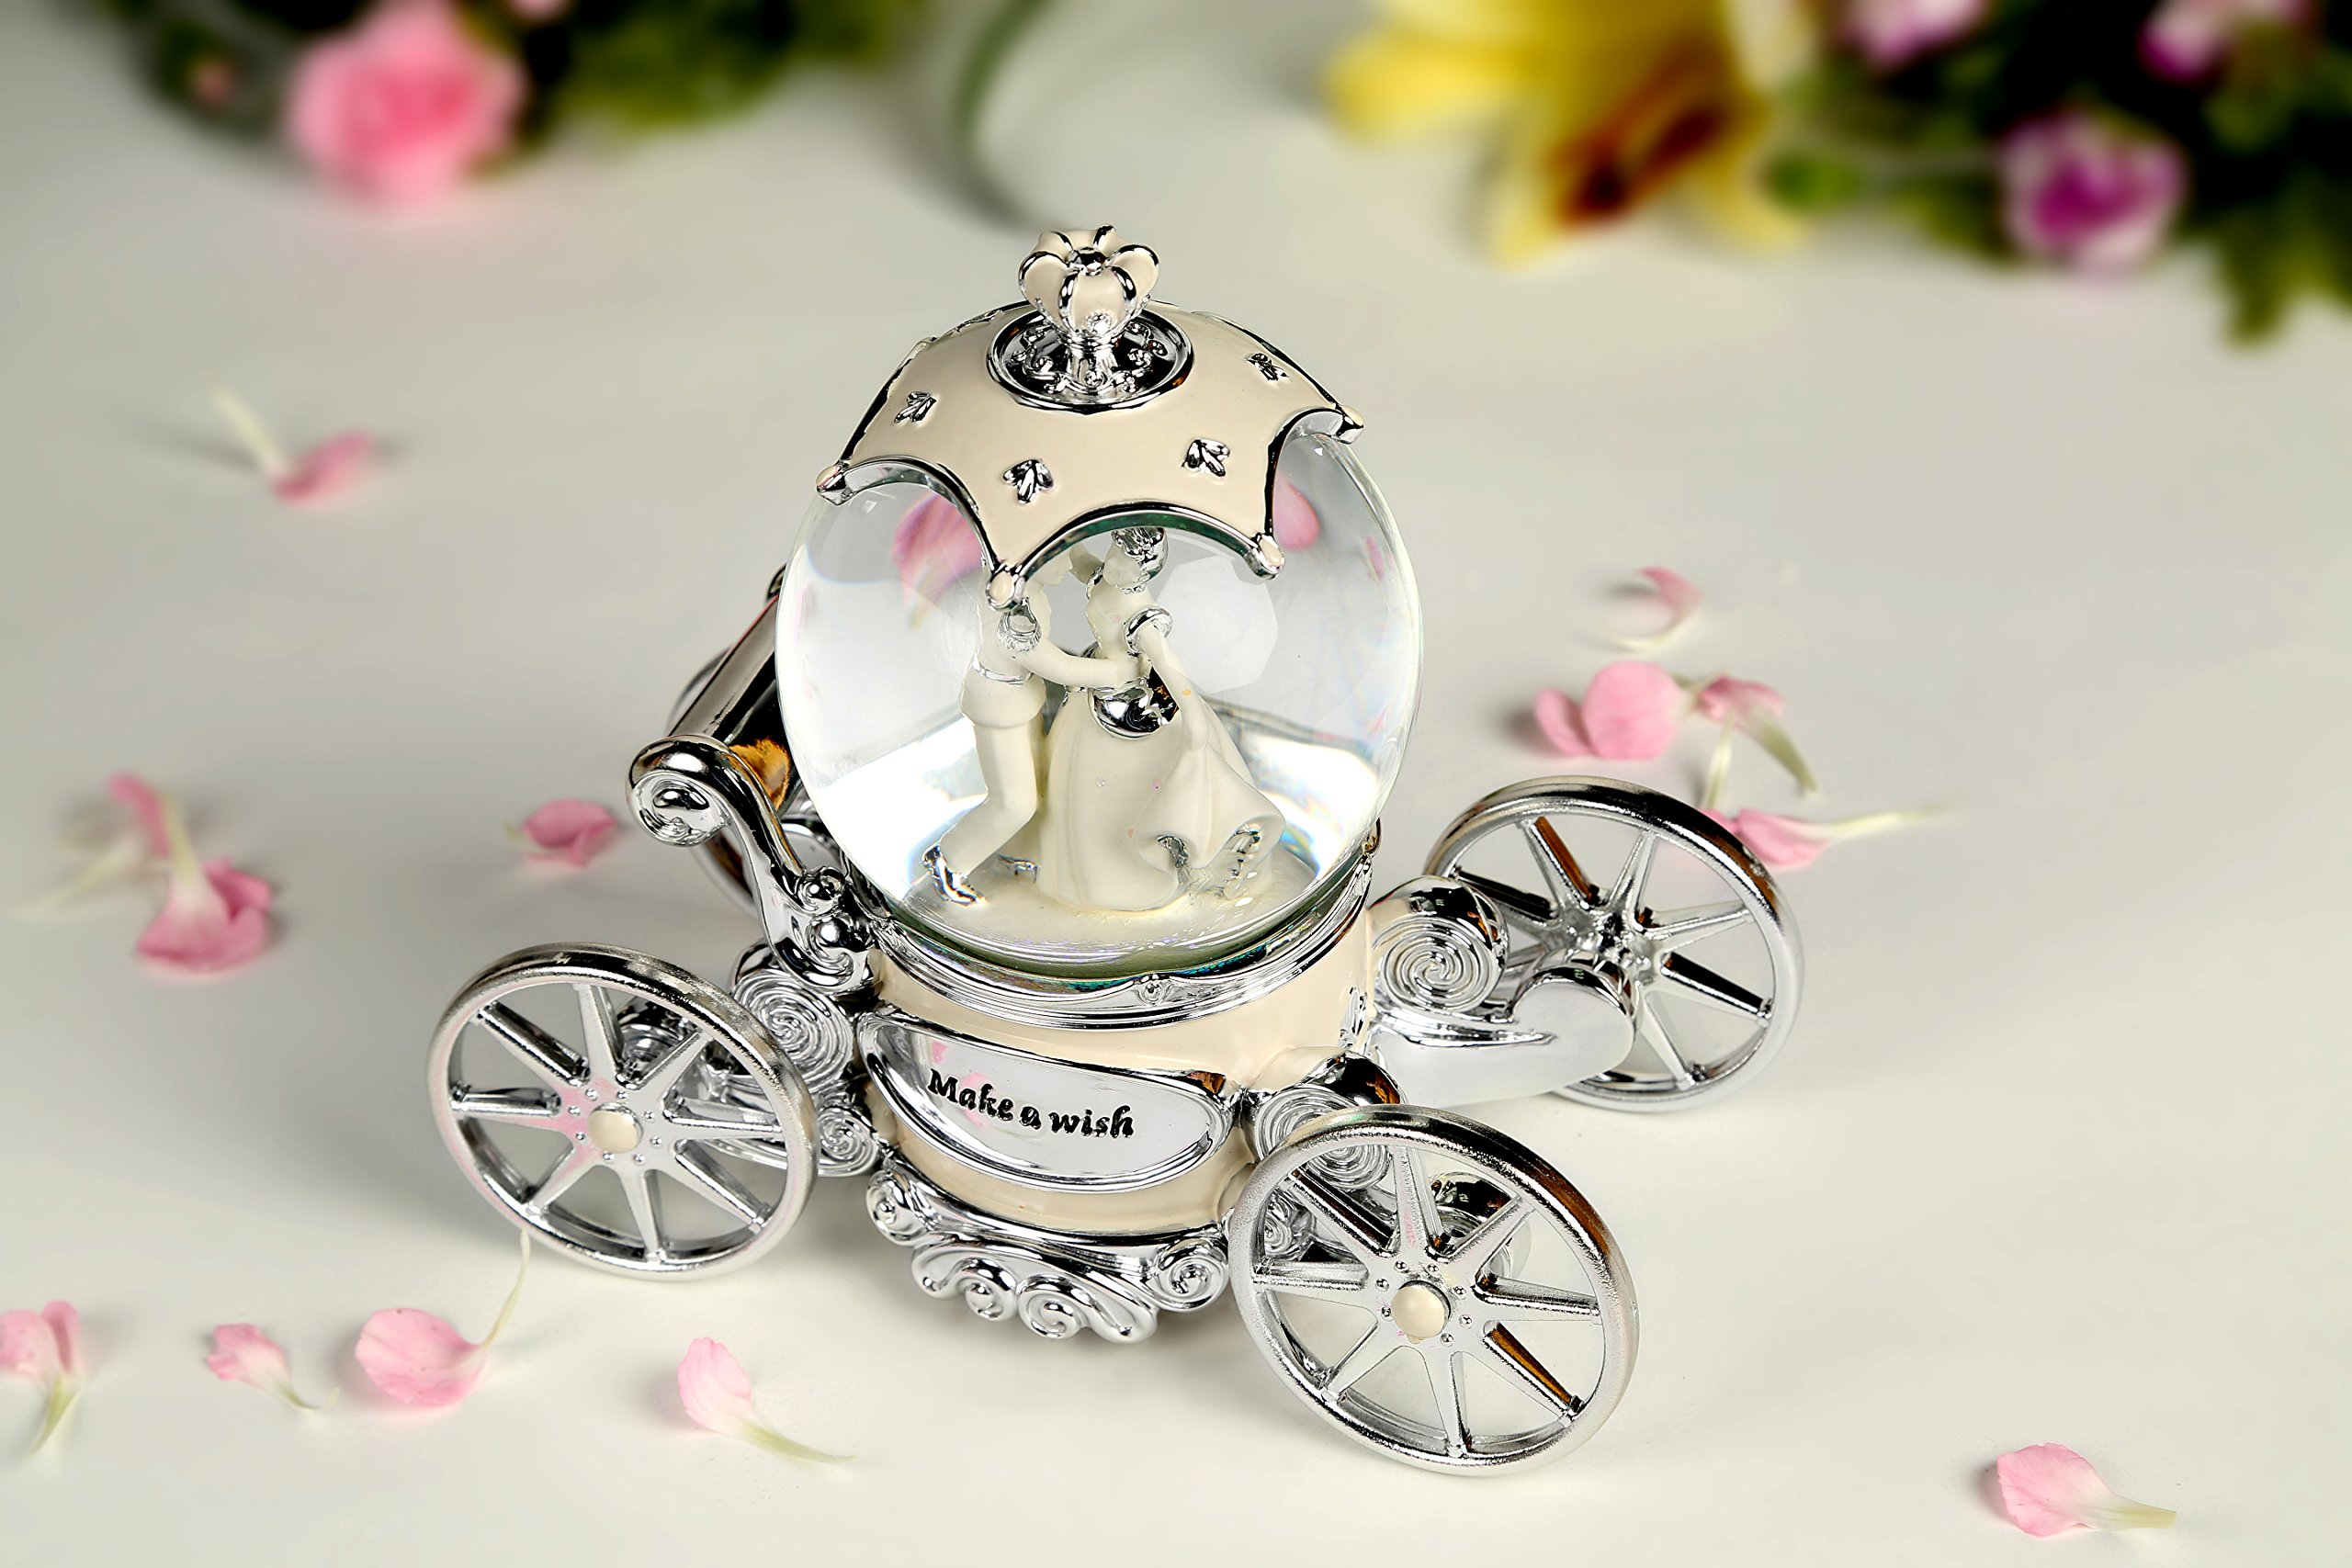 Water Globe Crystal Ball Wind Up Led with Music of Wedding March,Bride and Groom White Music Box by Bts (Image #5)